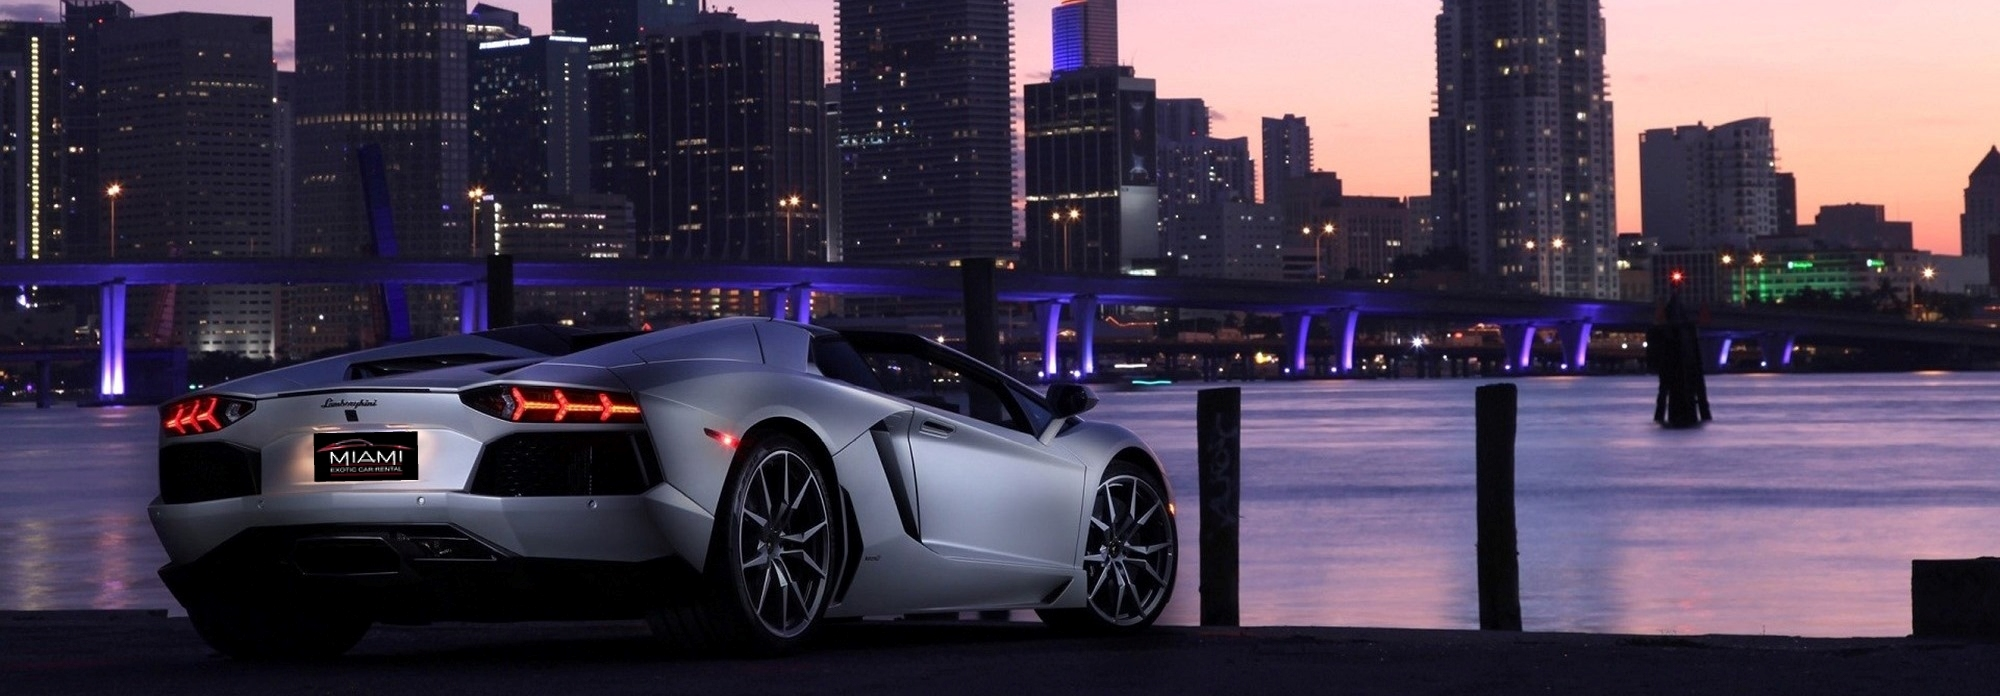 Miami Exotic Car Rental Finest Dream Car Selection